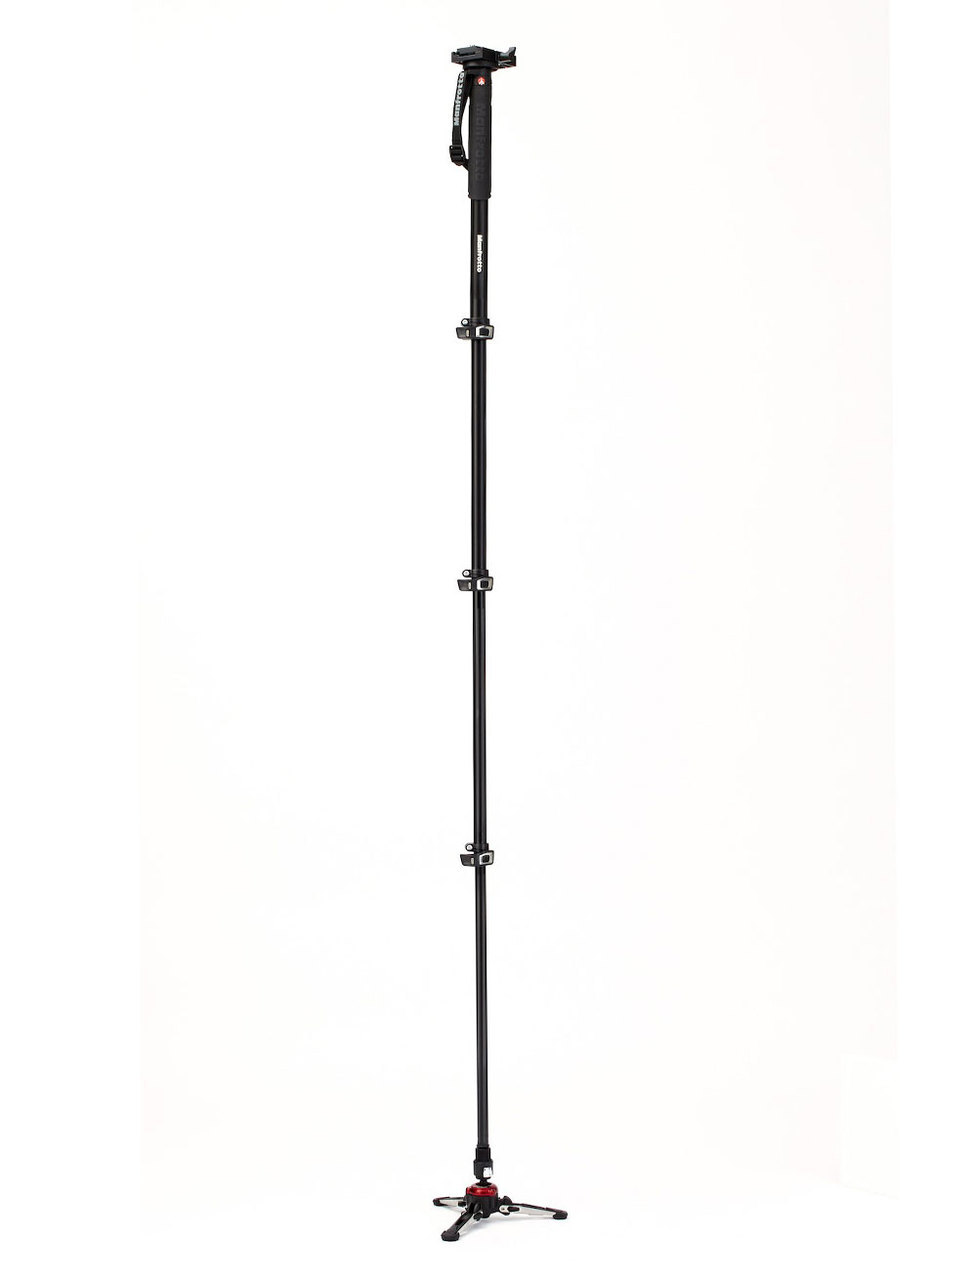 Manfrotto MVMXPROA4577 4 Section XPRO Video Monopod With Sliding Plate & Fluid Base - #MVMXPROA4577